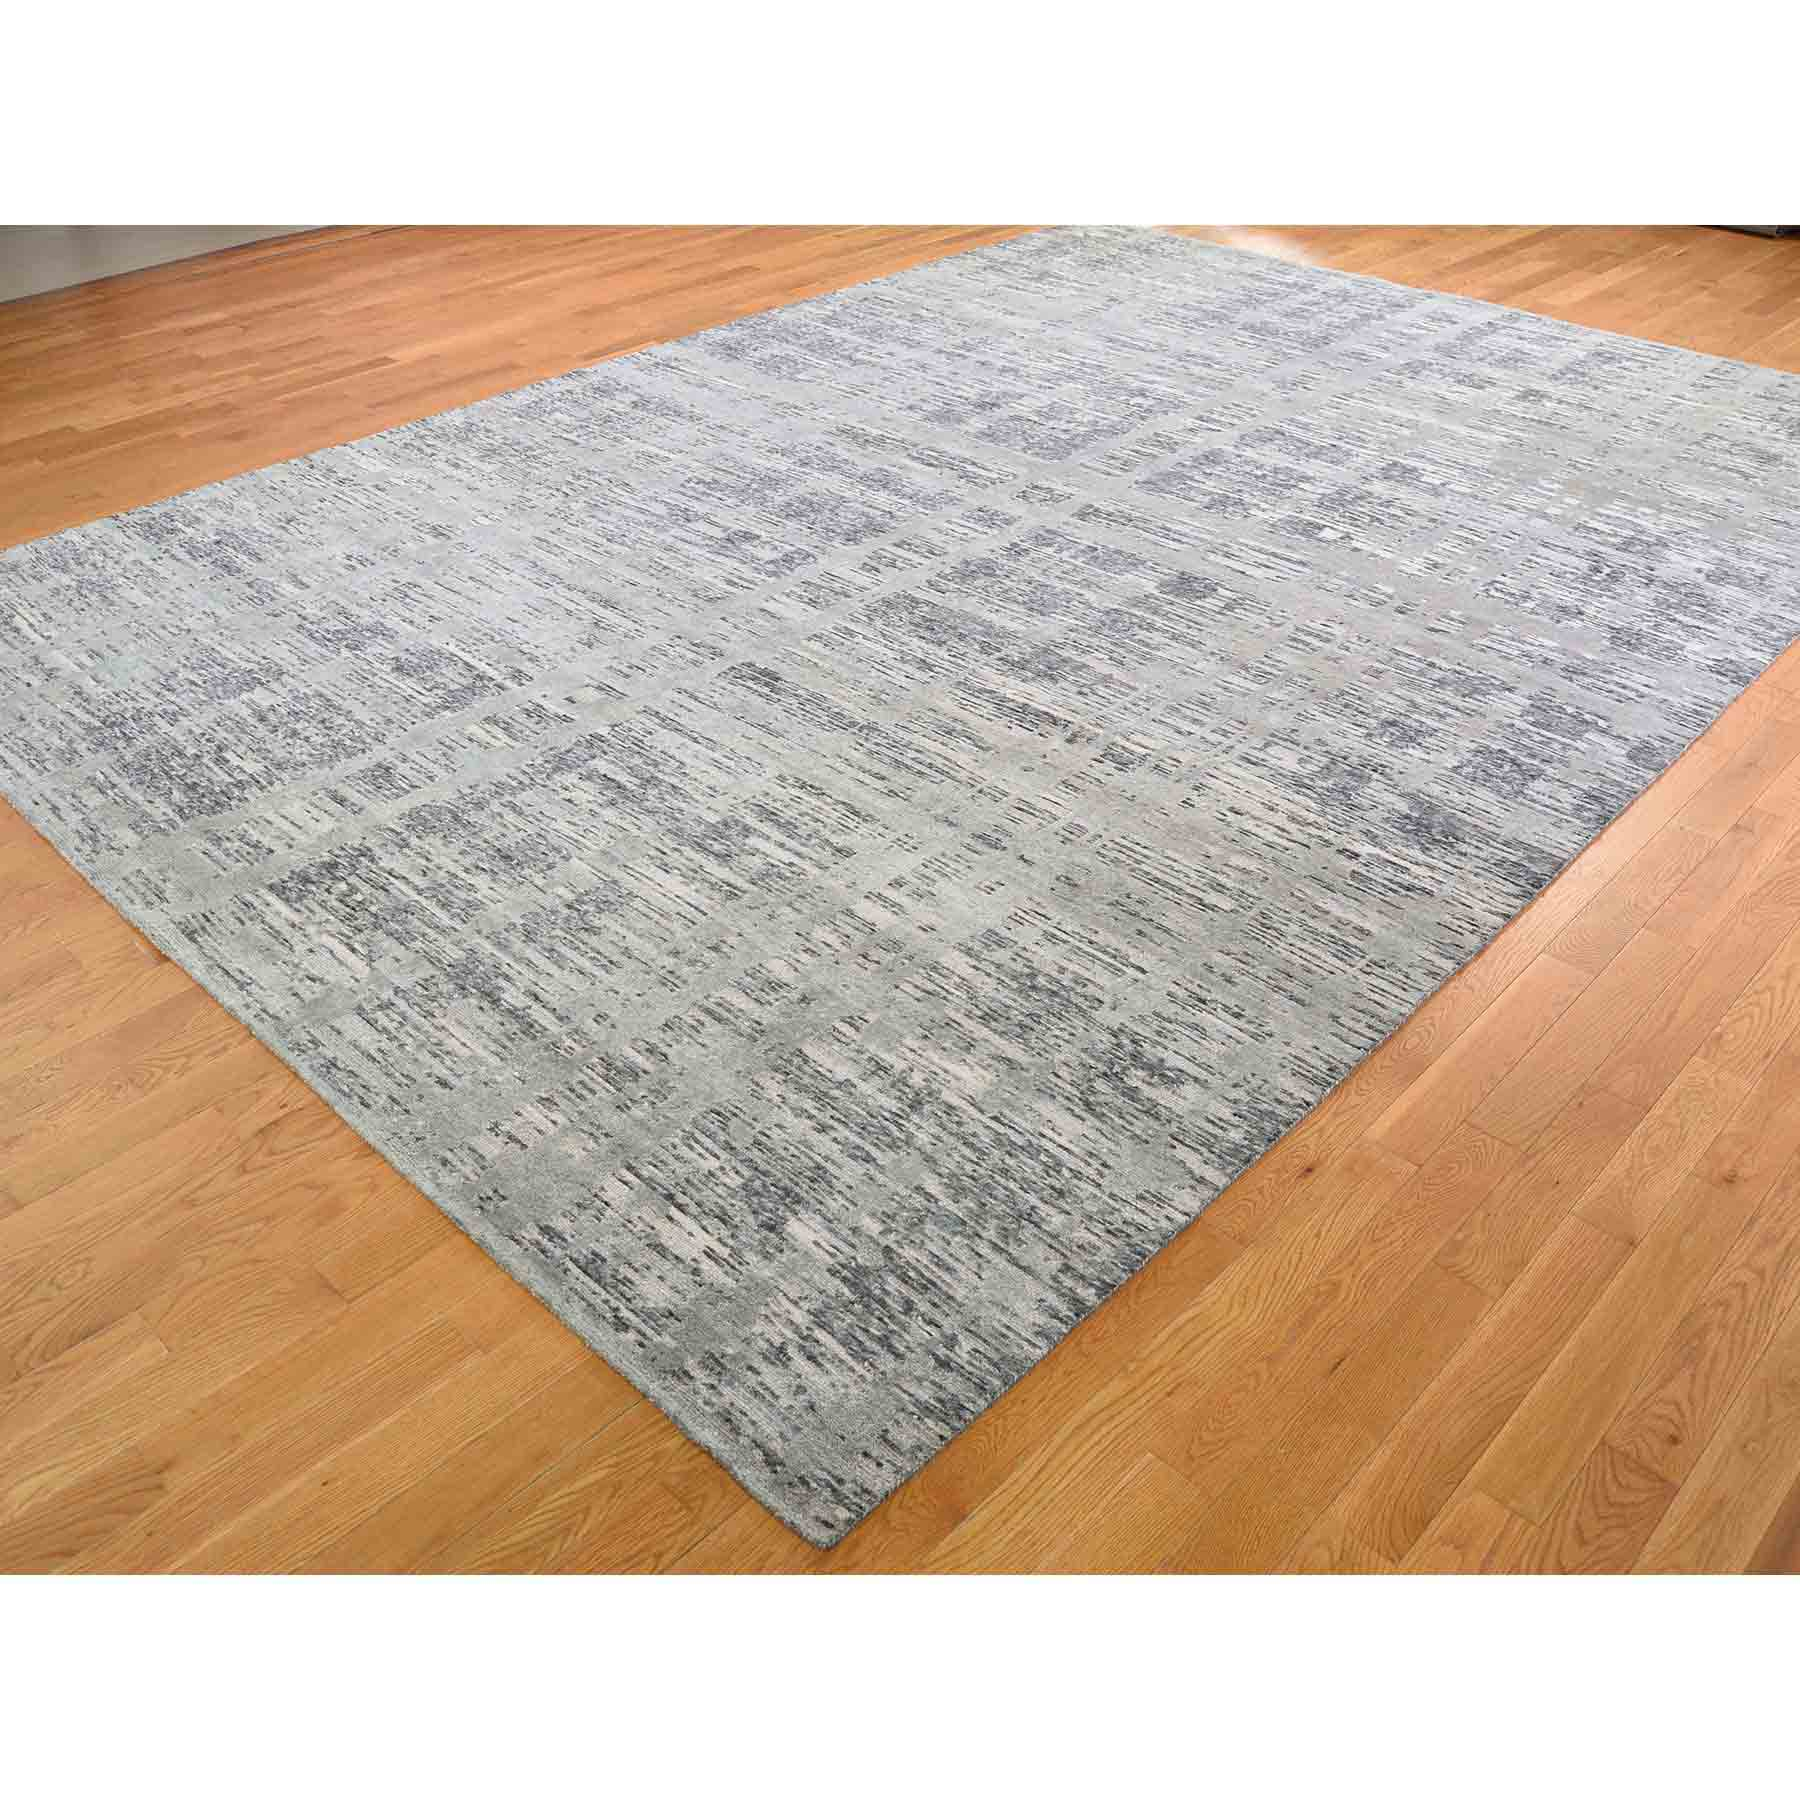 Modern-and-Contemporary-Hand-Knotted-Rug-228455